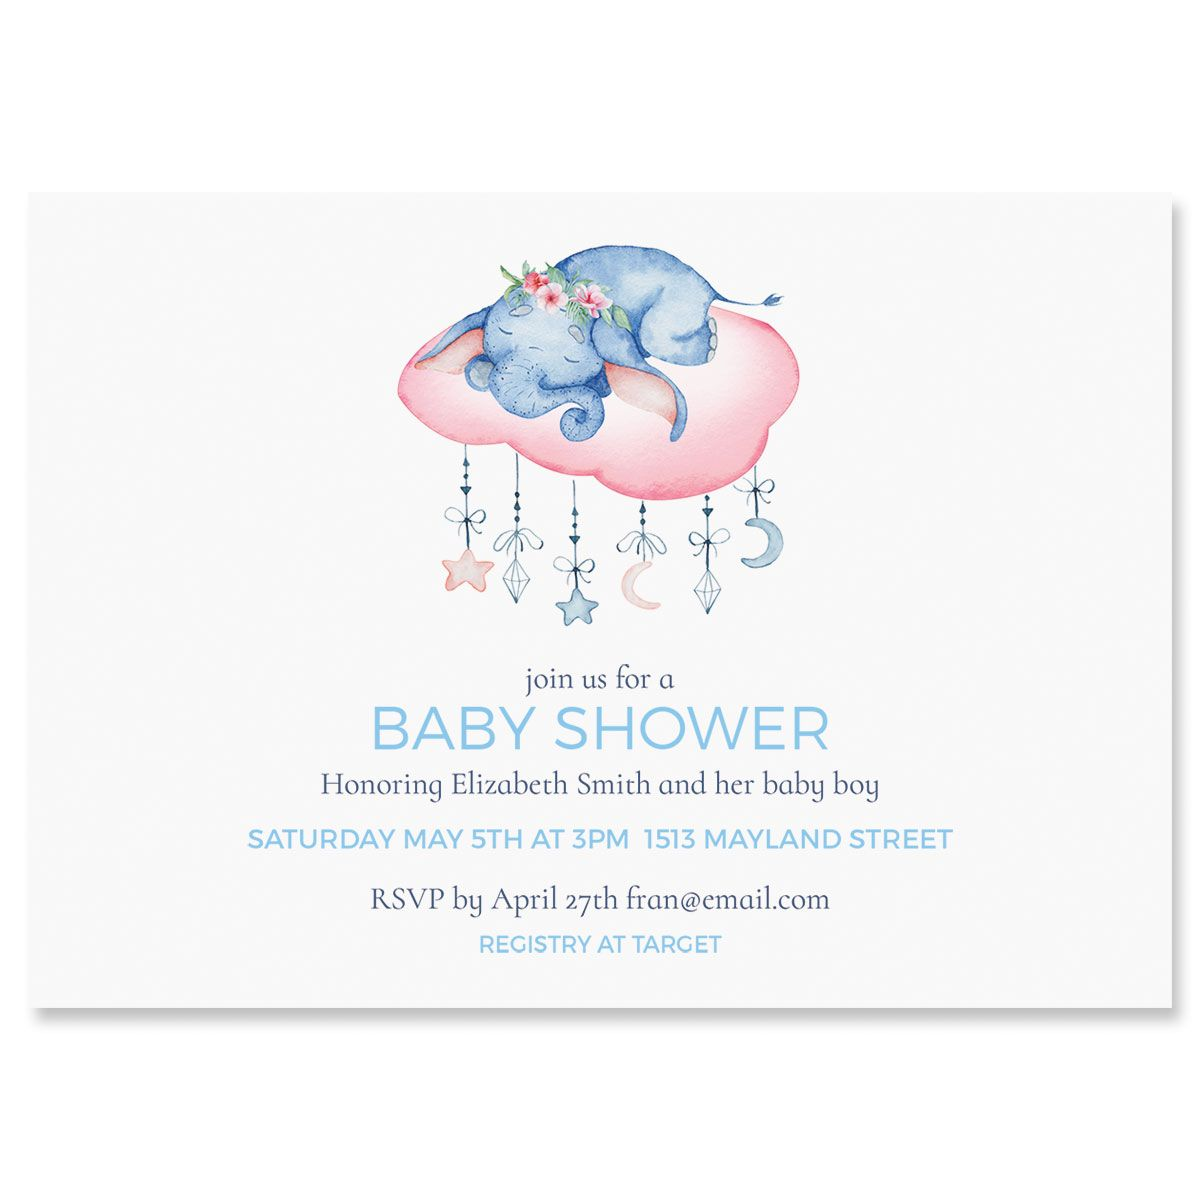 Sleepy Elephant Personalized Shower Invitations